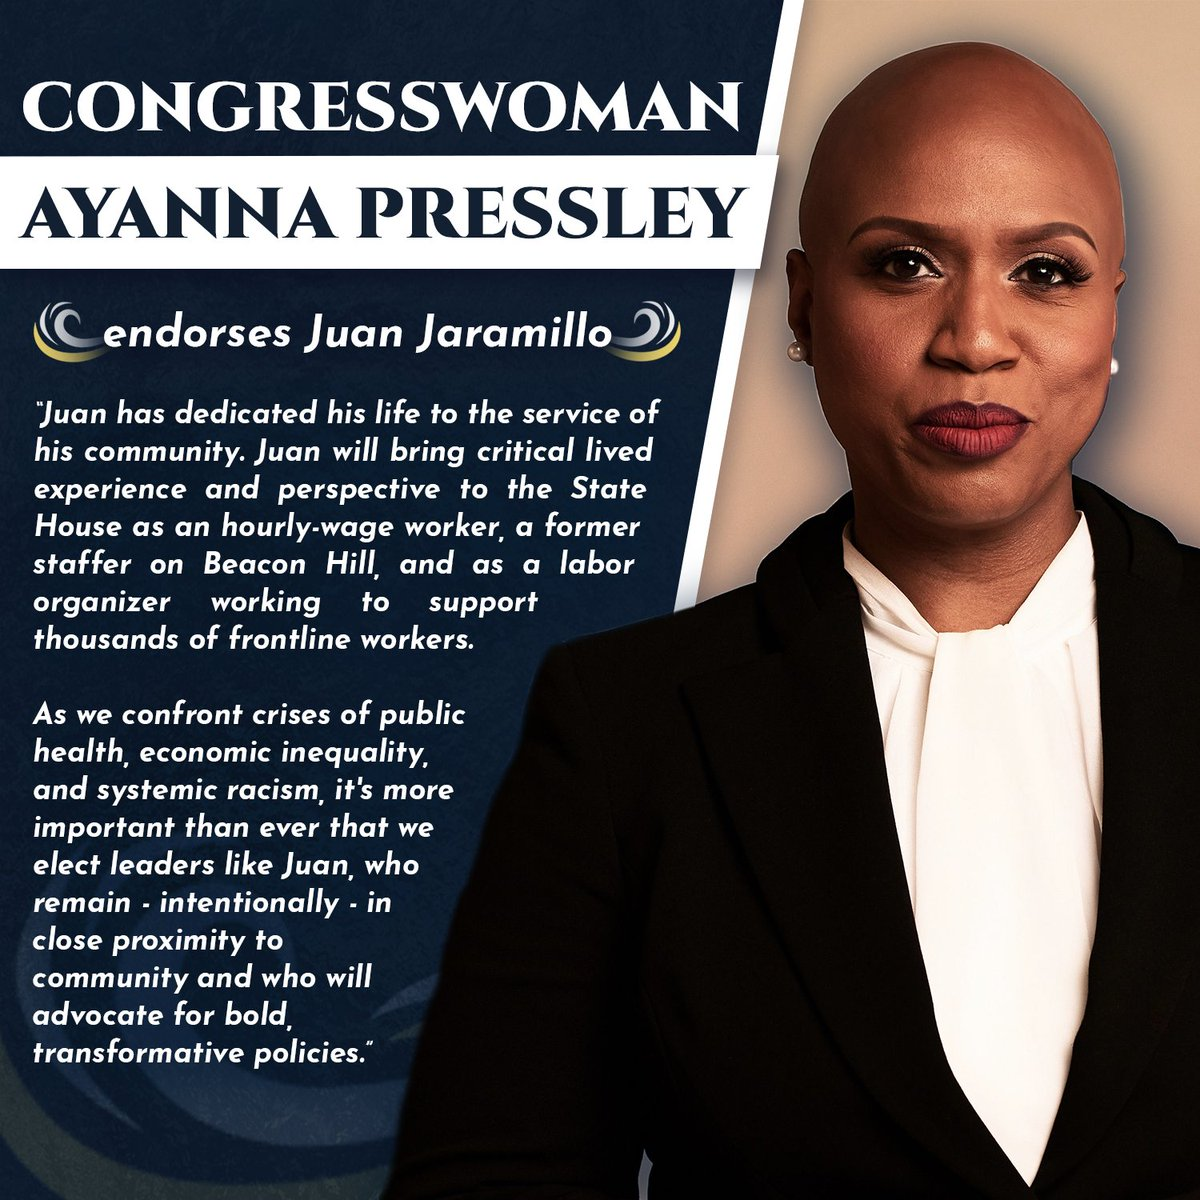 I am inspired daily by how Congresswoman @AyannaPressley represents her communities w/ moral clarity in Congress & am deeply humbled by her support. This endorsement reflects our campaign's commitment to the working families of Revere & Winthrop. Pitch In: